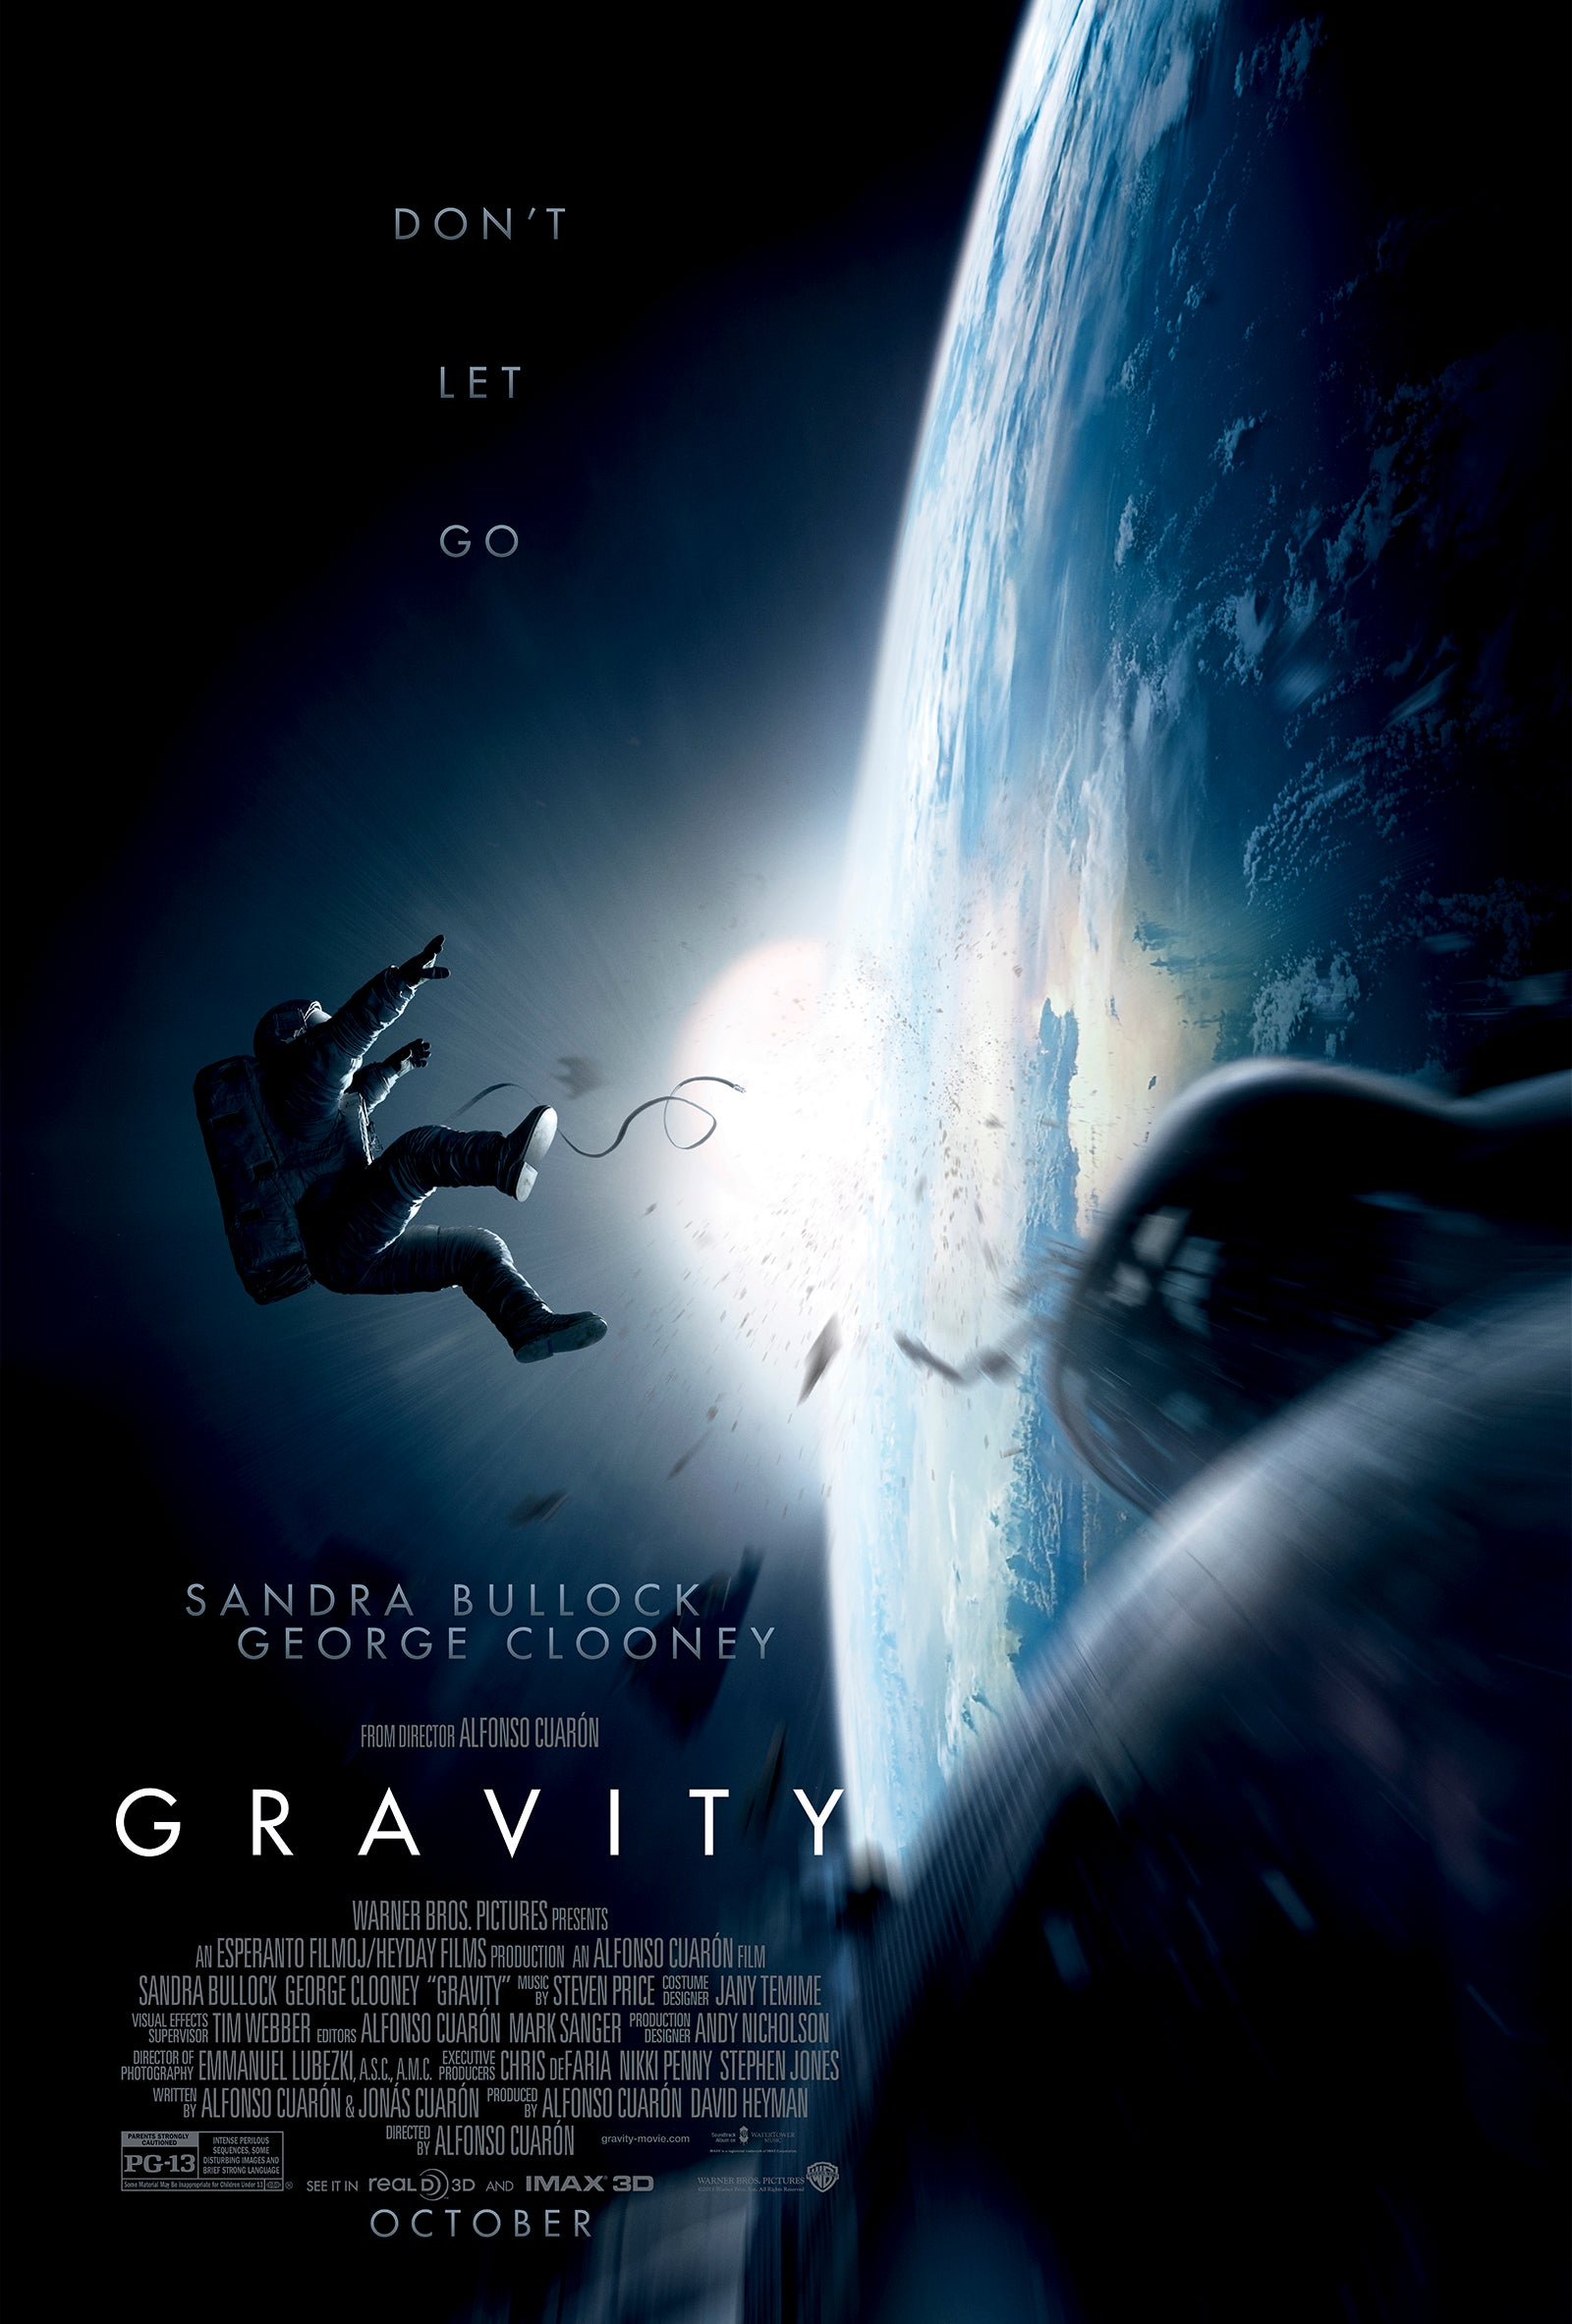 Gravity Trailer From Harry Potter and the Prisoner of Azkaban Director